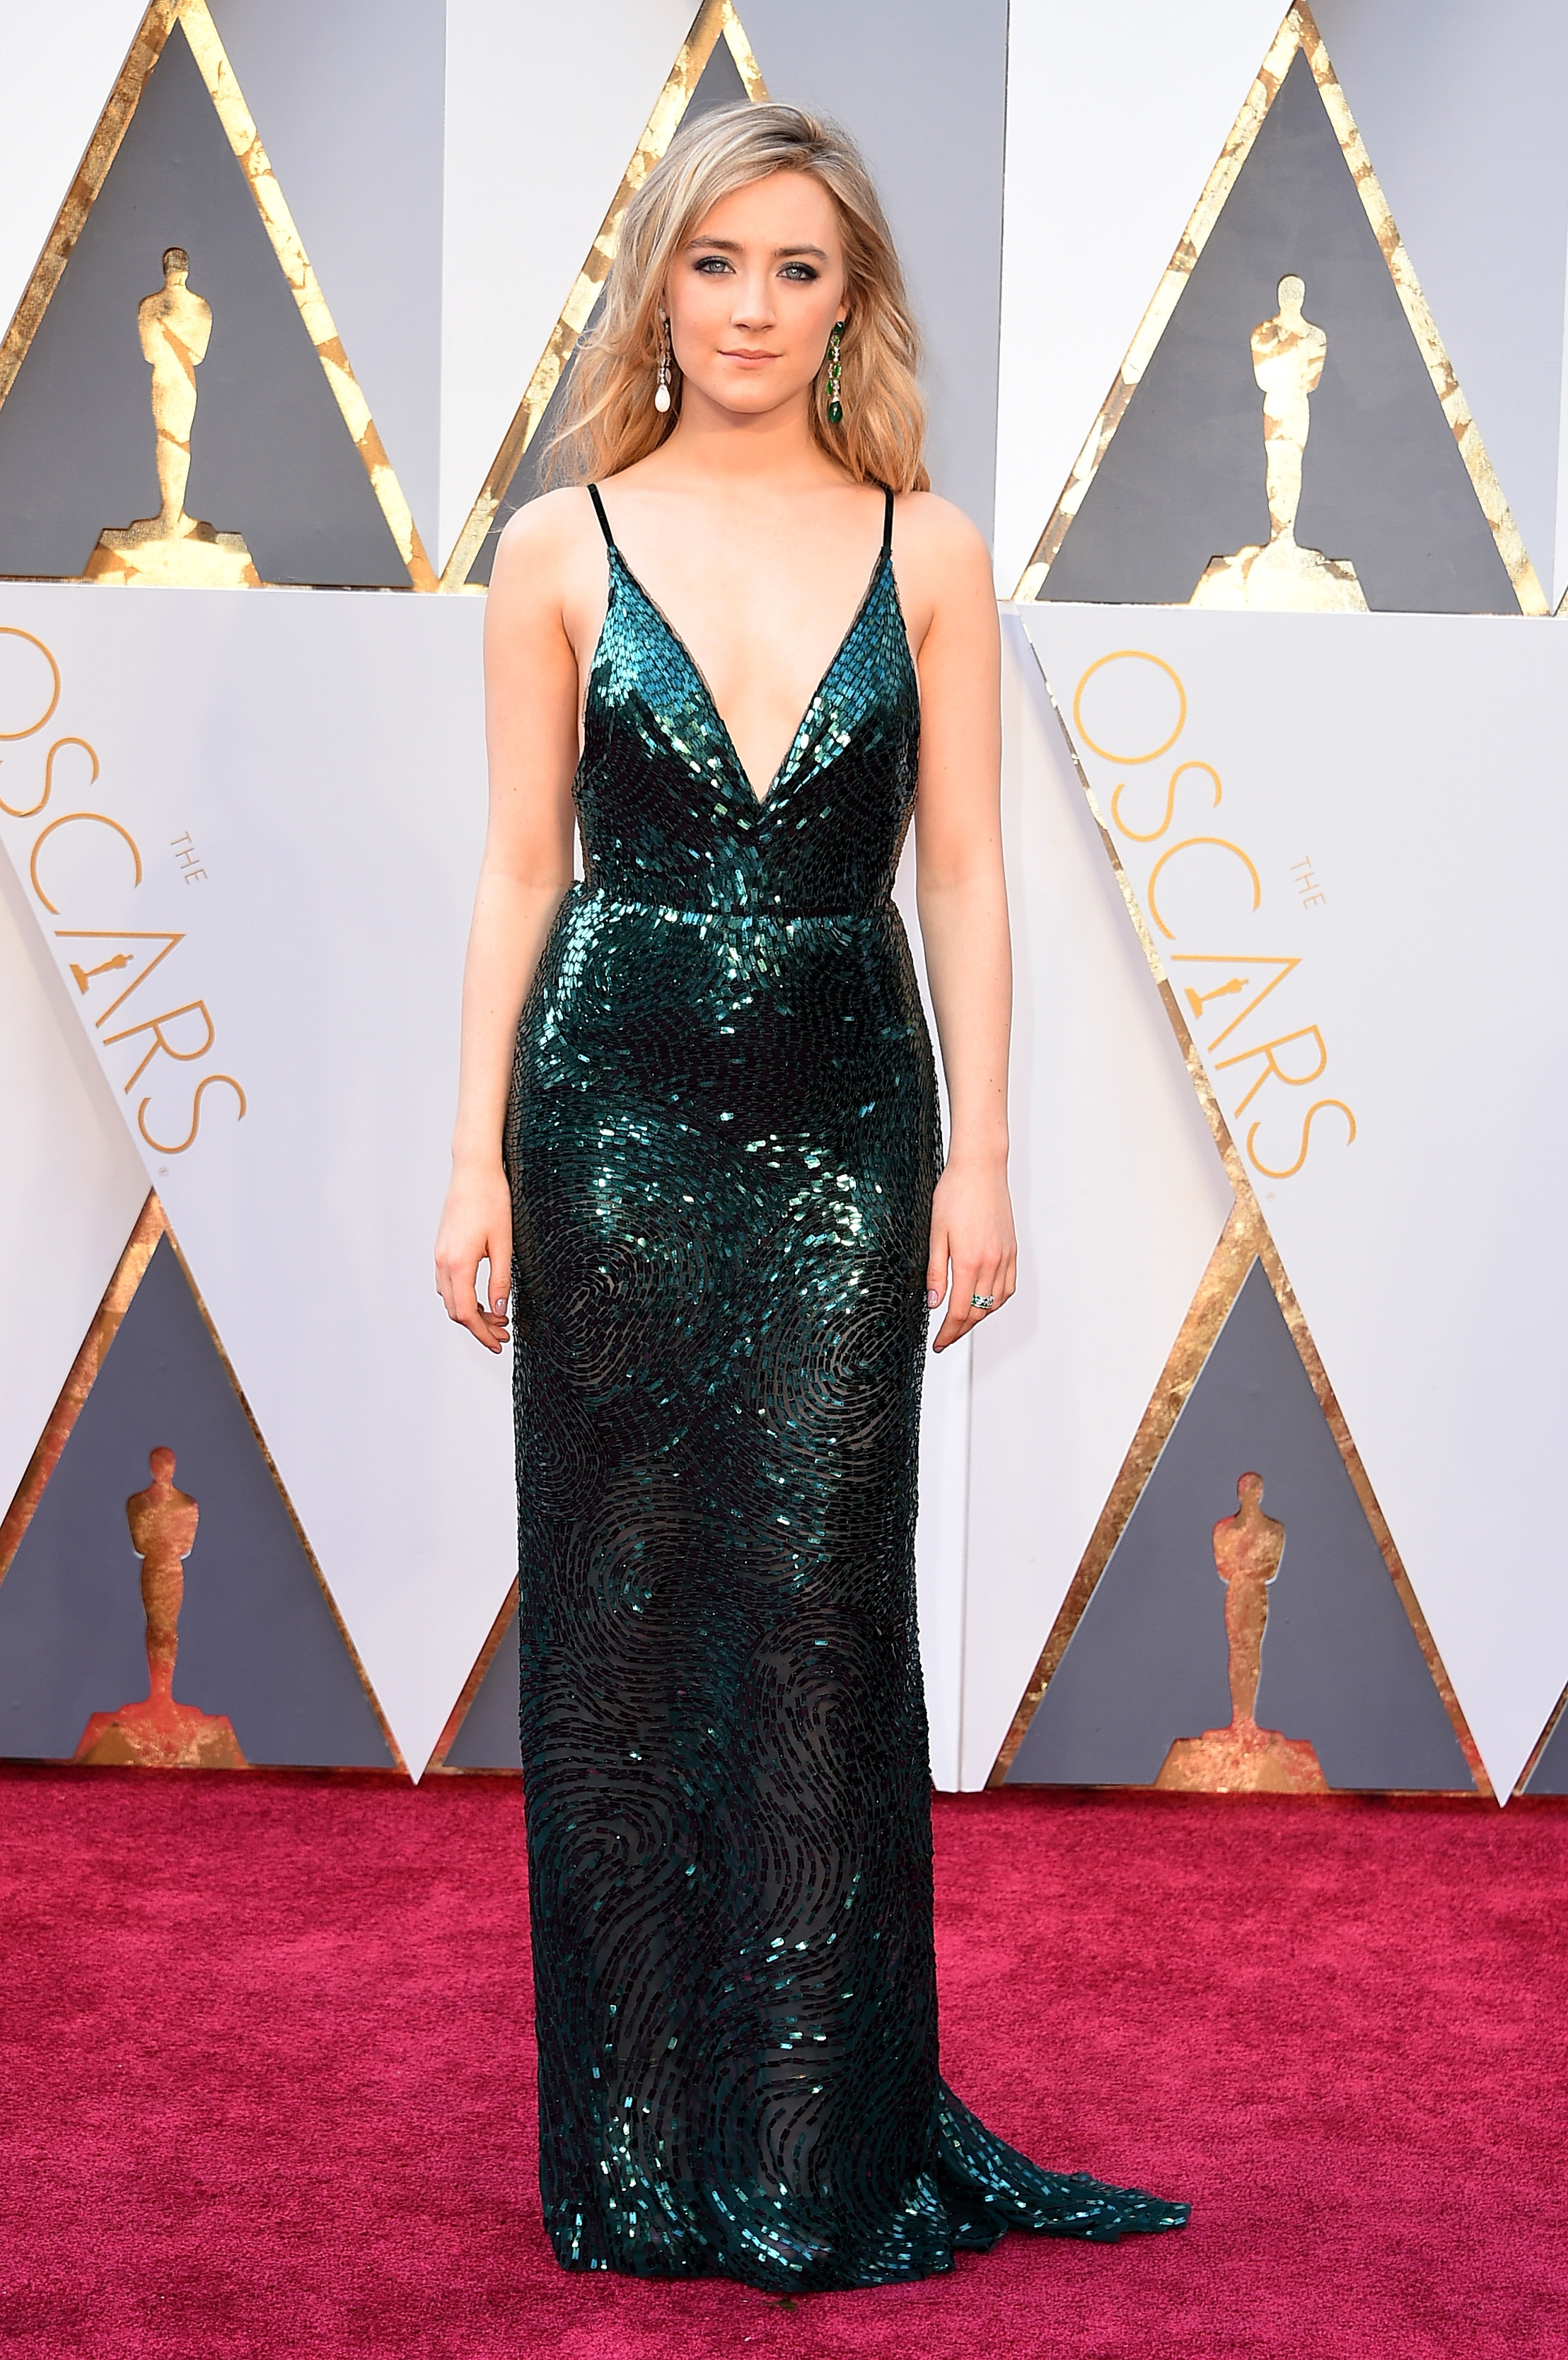 Image result for Saoirse Ronan in Calvin Klein - Academy Awards 2016